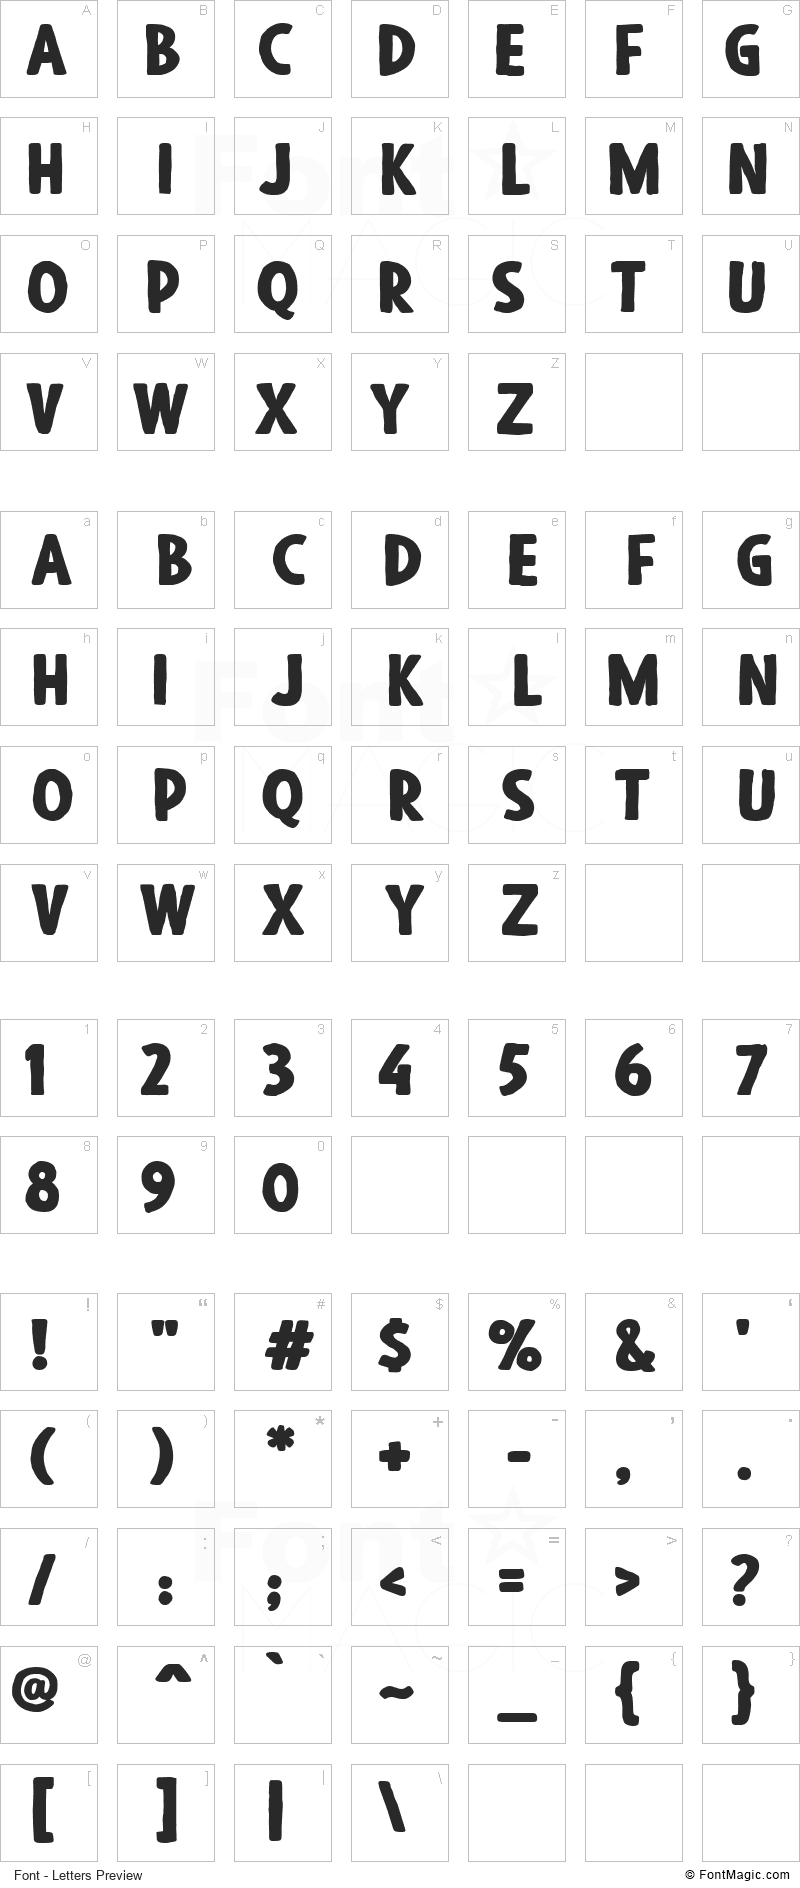 Blackore Font - All Latters Preview Chart